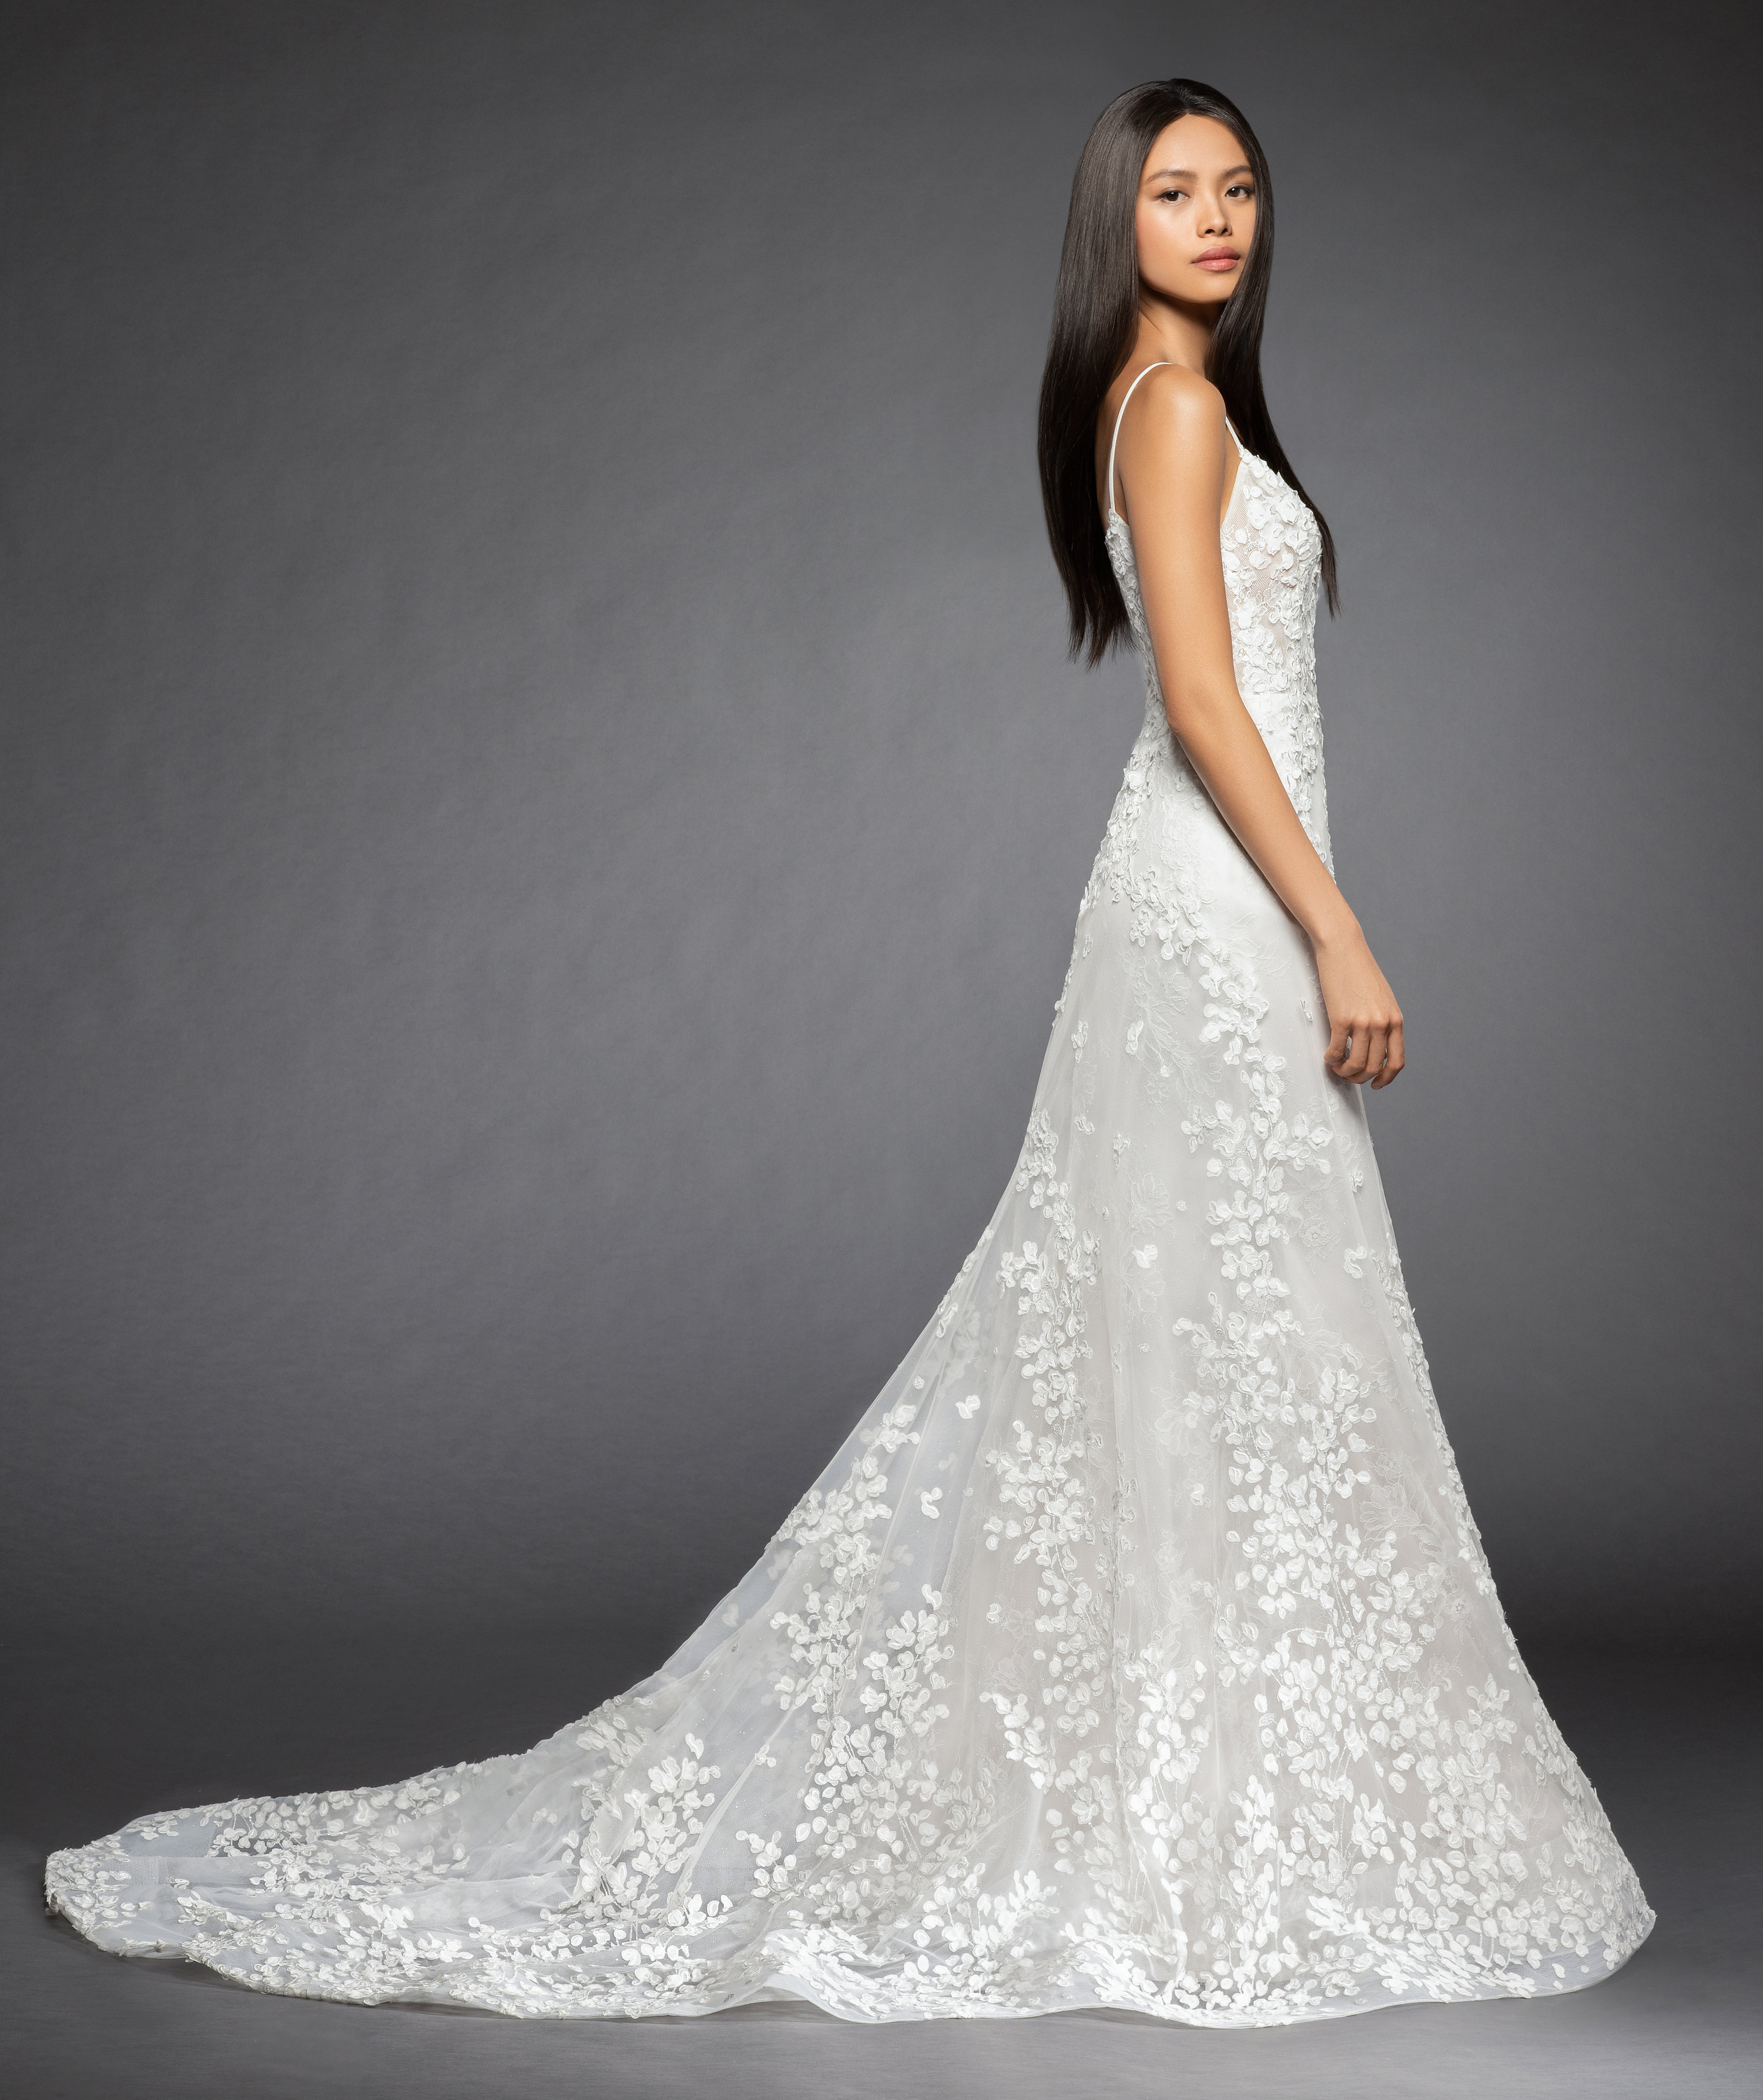 fa1d652f2d6b Bridal Gowns and Wedding Dresses by JLM Couture - Style 3853 Milena